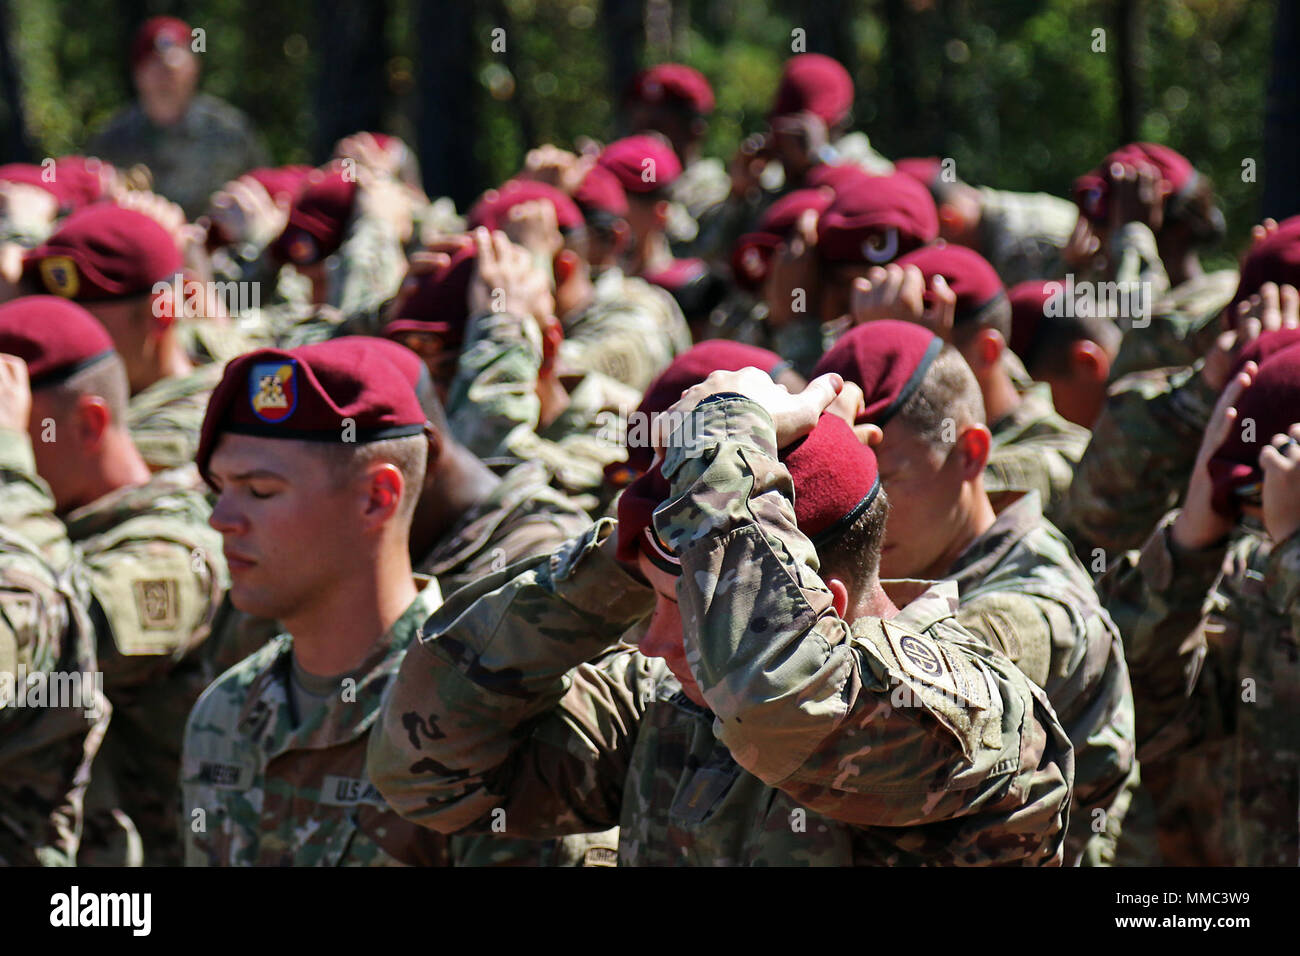 8f3883e9 New 82nd Airborne Division Paratroopers don maroon berets during the  Airborne Integration Course Beret Donning Ceremony